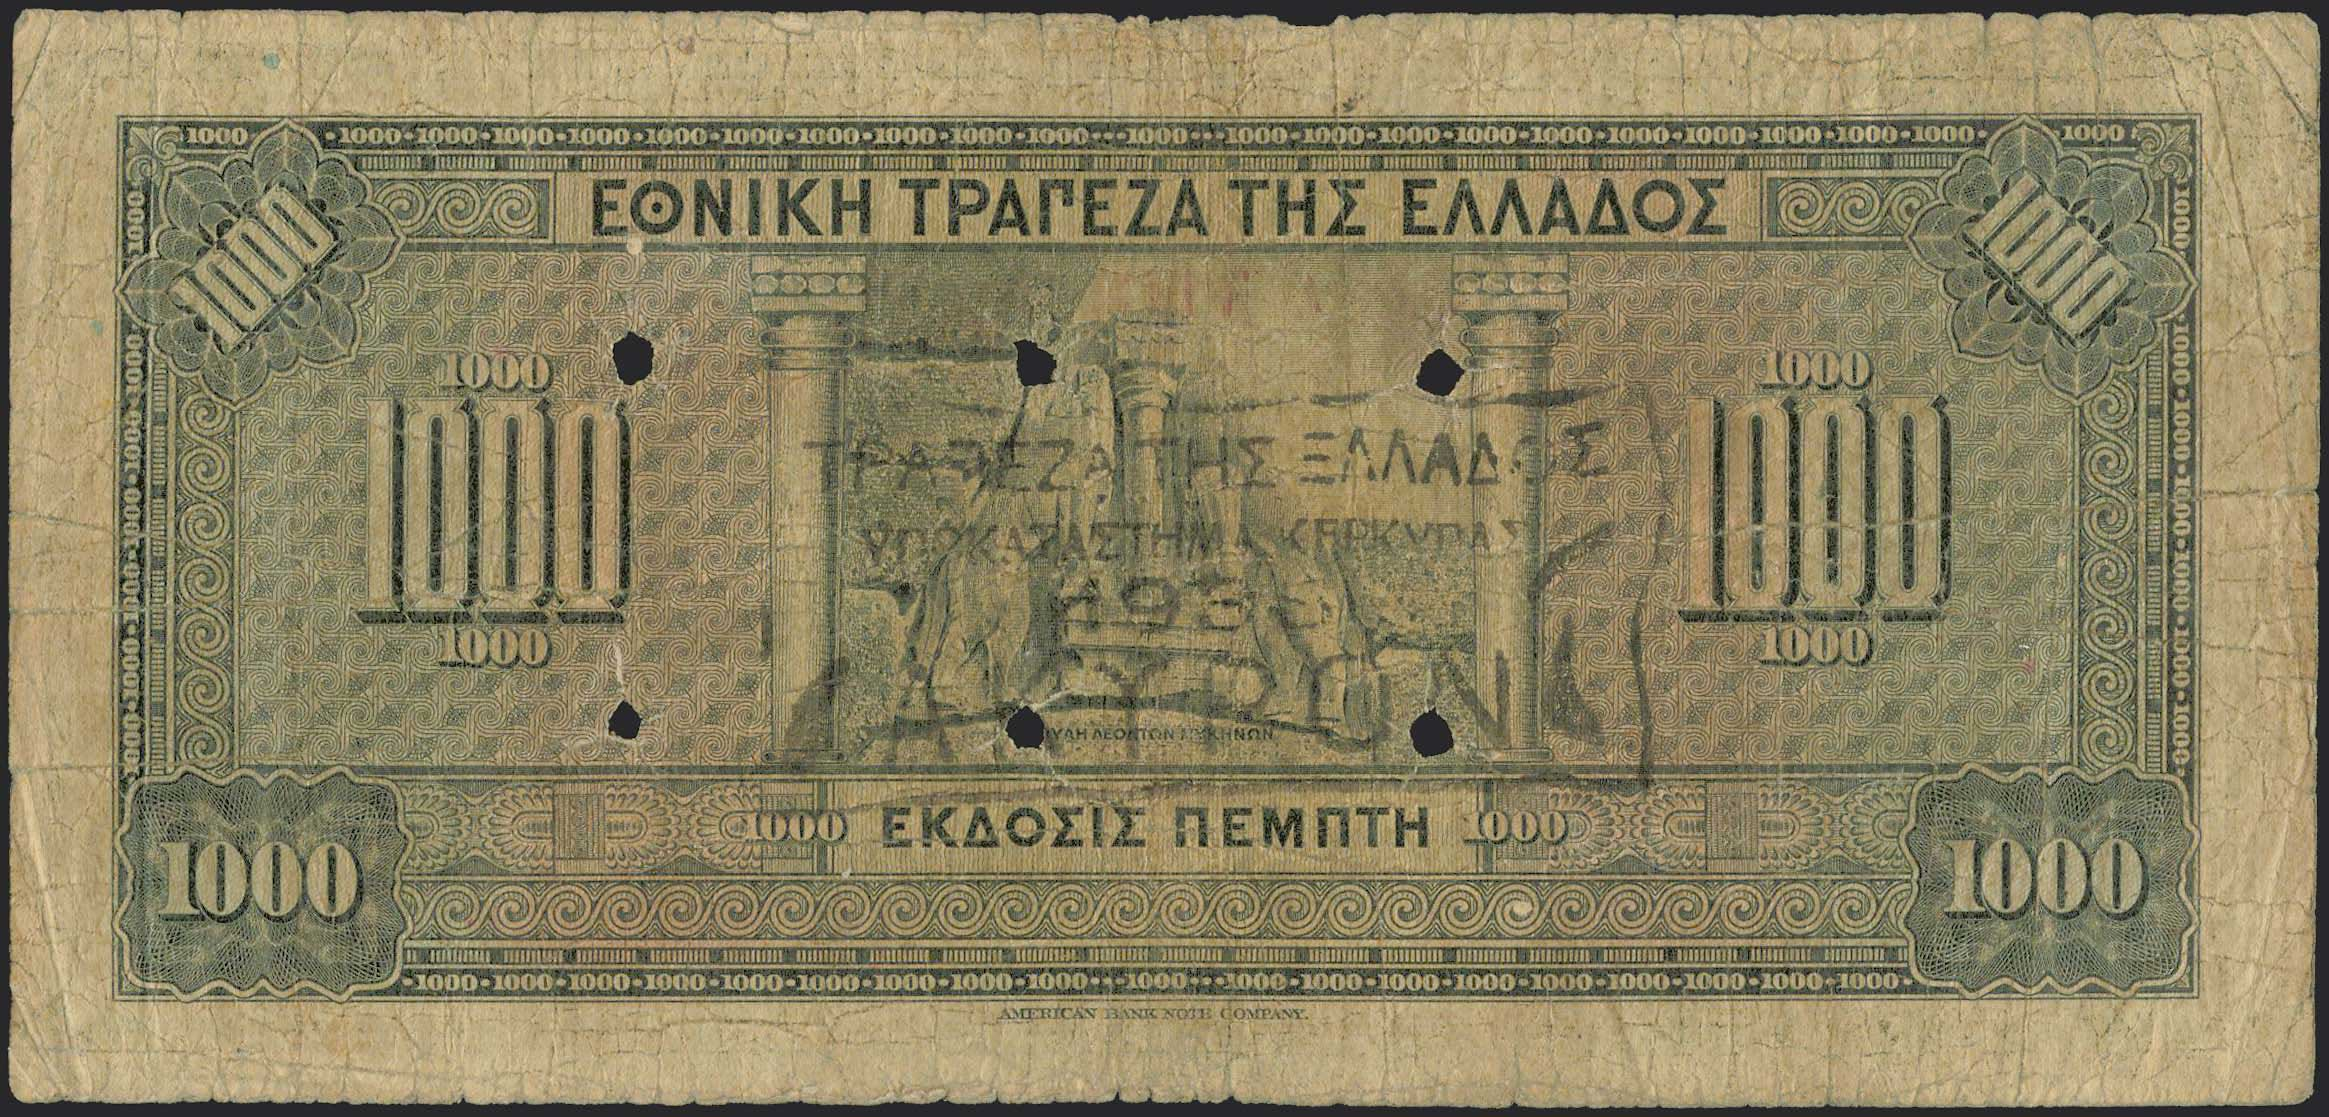 Lot 8448 - -  PAPER MONEY - BANKNOTES 1941 town cachets (re-issue) -  A. Karamitsos Public & Live Bid Auction 649 Coins, Medals & Banknotes